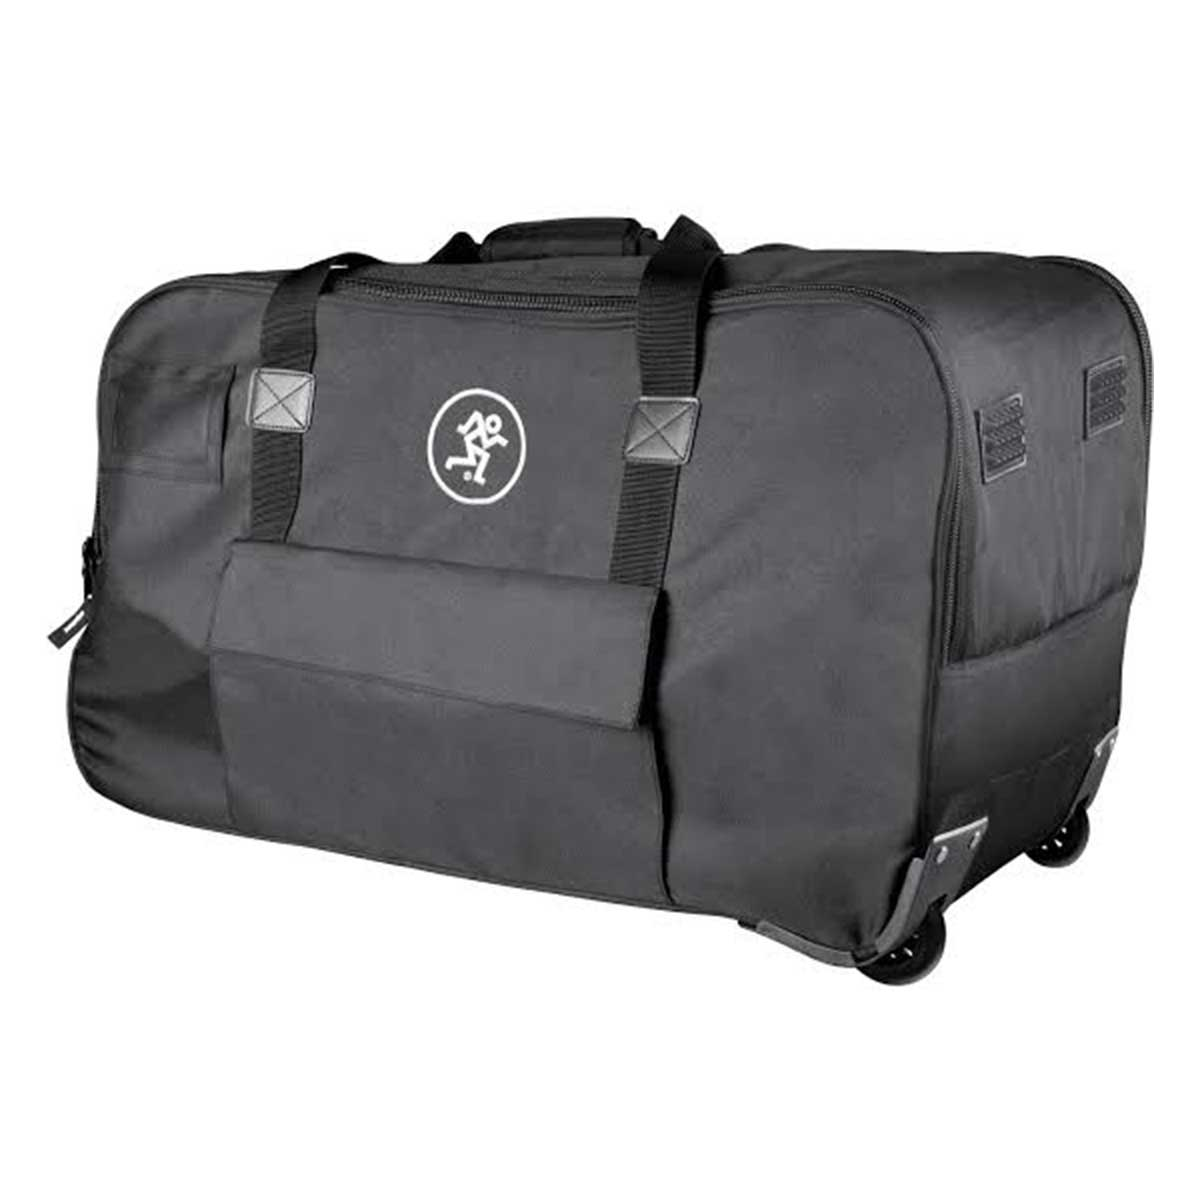 Mackie Rolling Speaker Bag for Thump 15A & Thump 15 BST